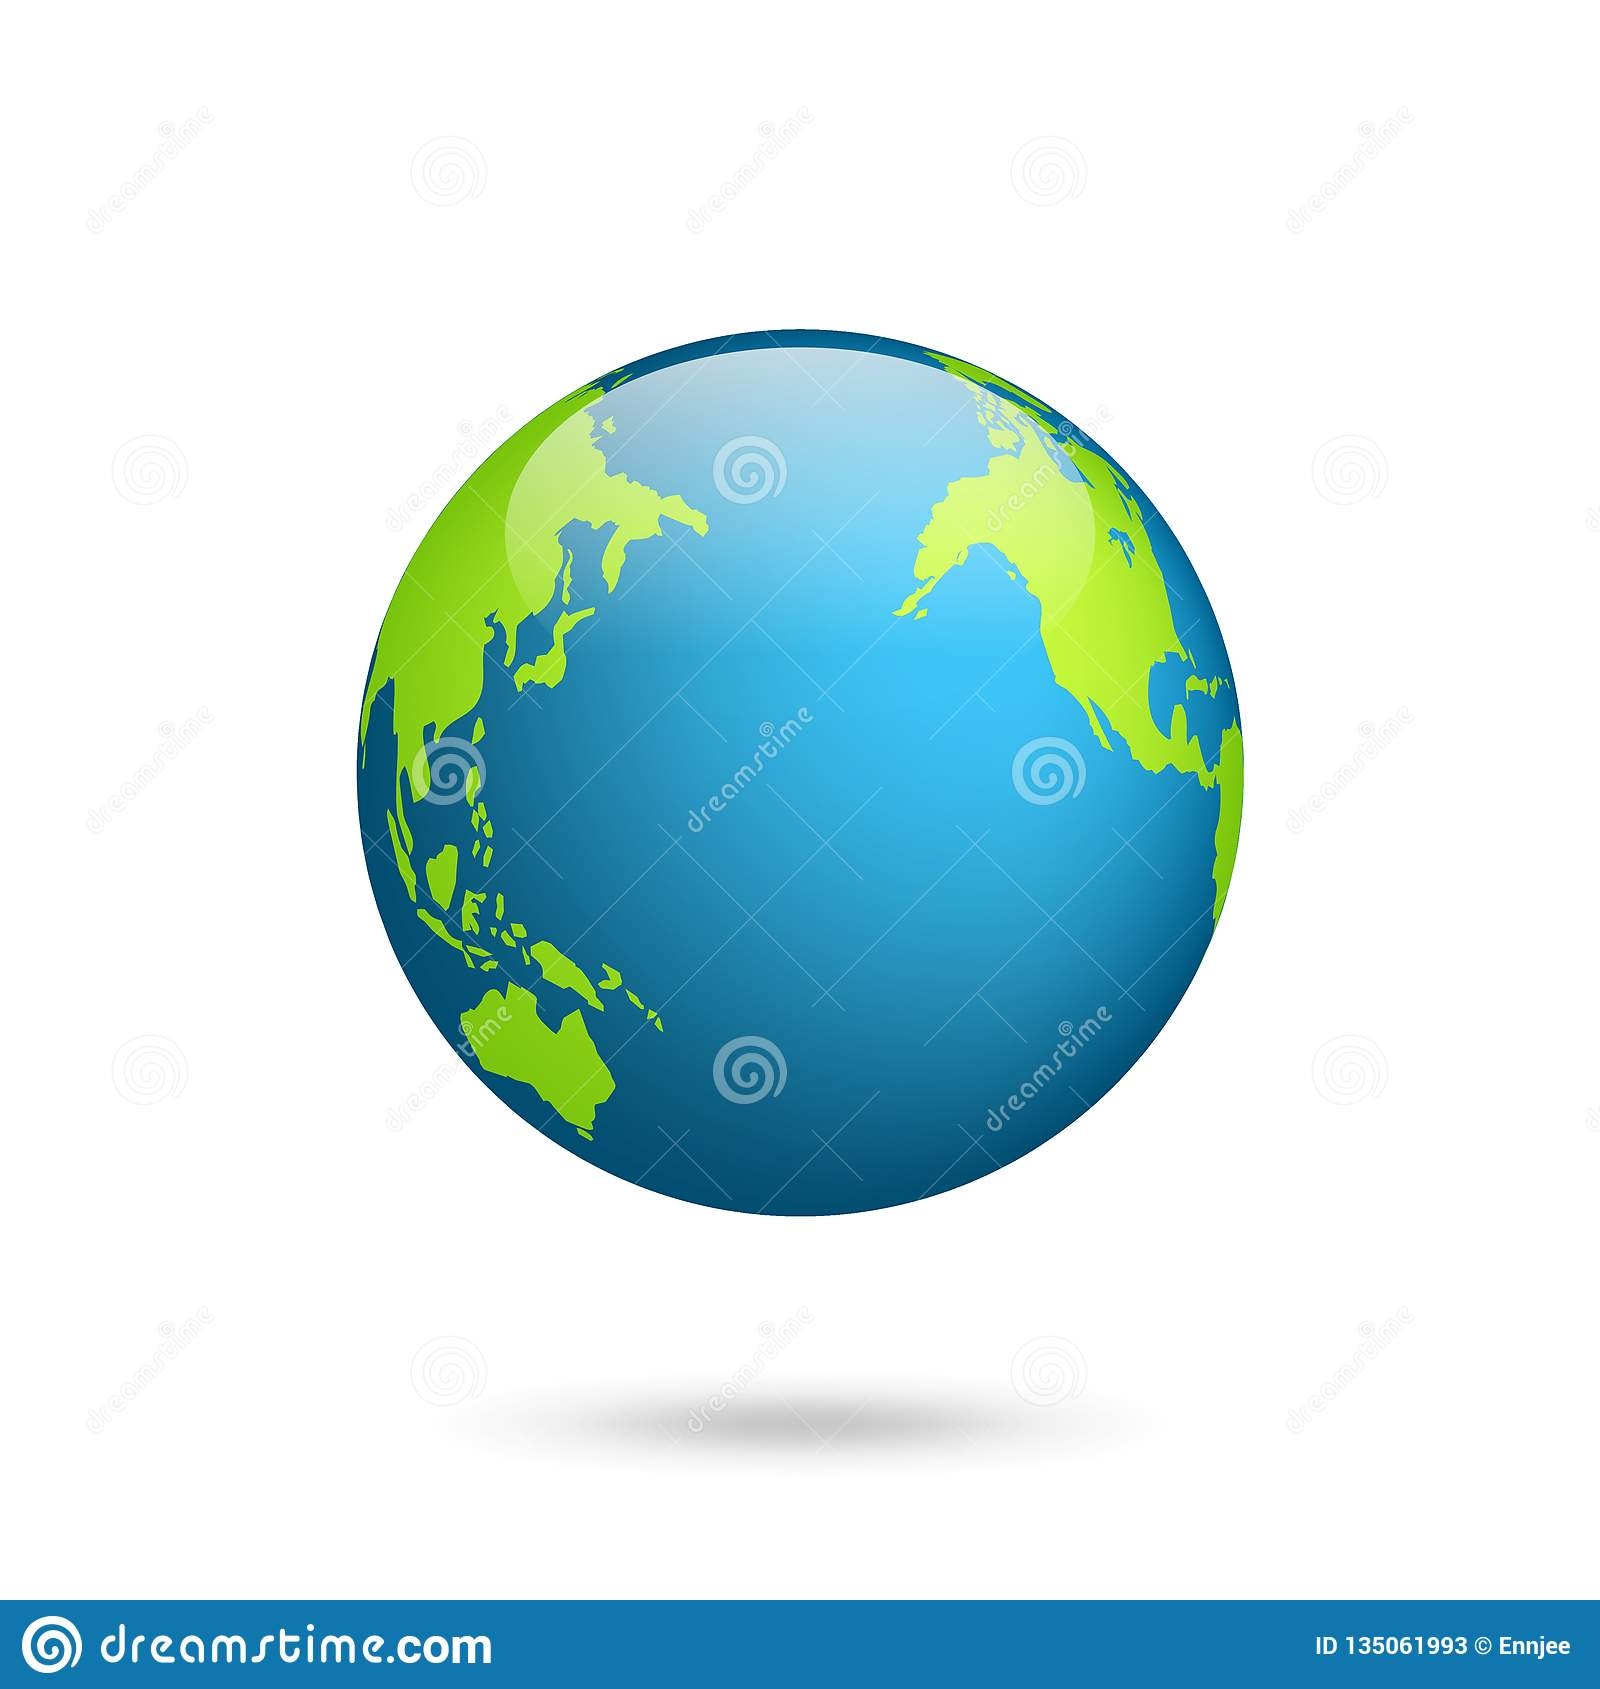 Map Of Africa Asia And Europe.Earth Globe World Map Set Planet With Continents Africa Asia